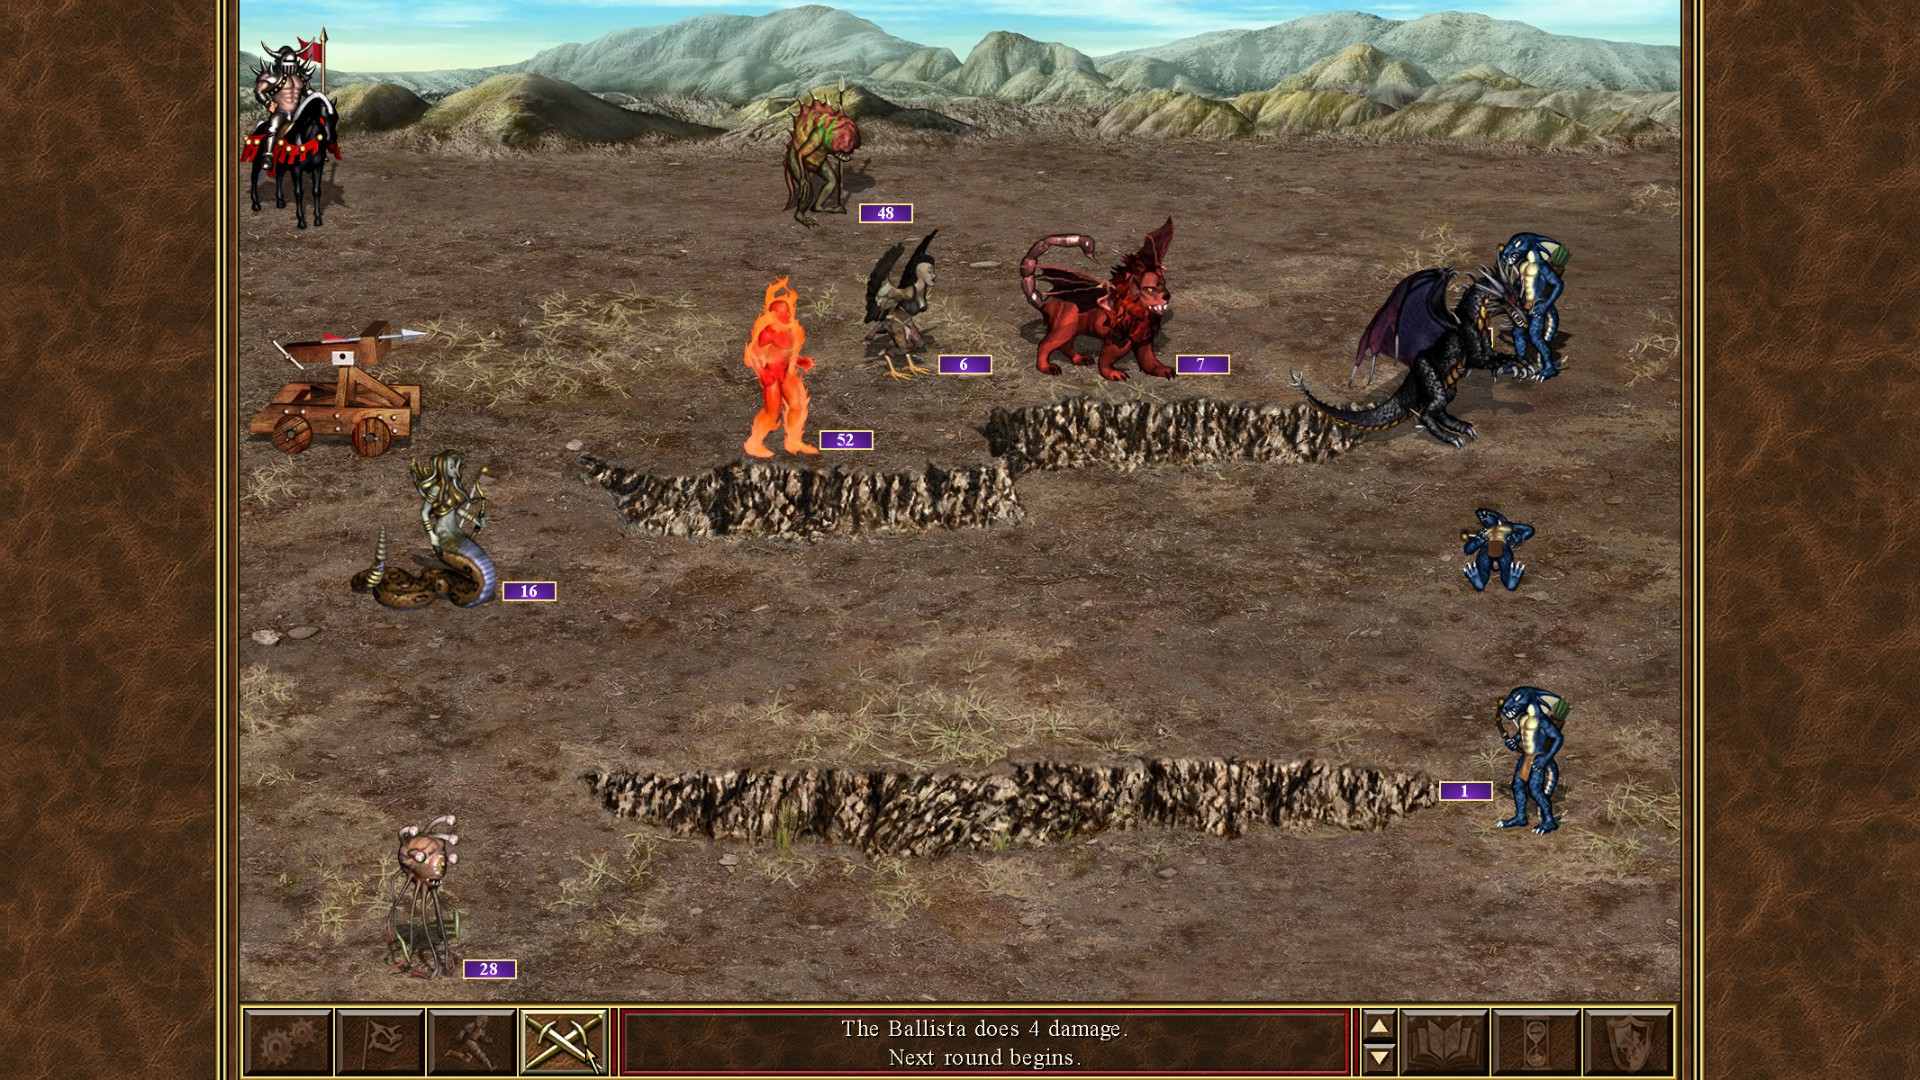 heroes of might and magic 3 download steam